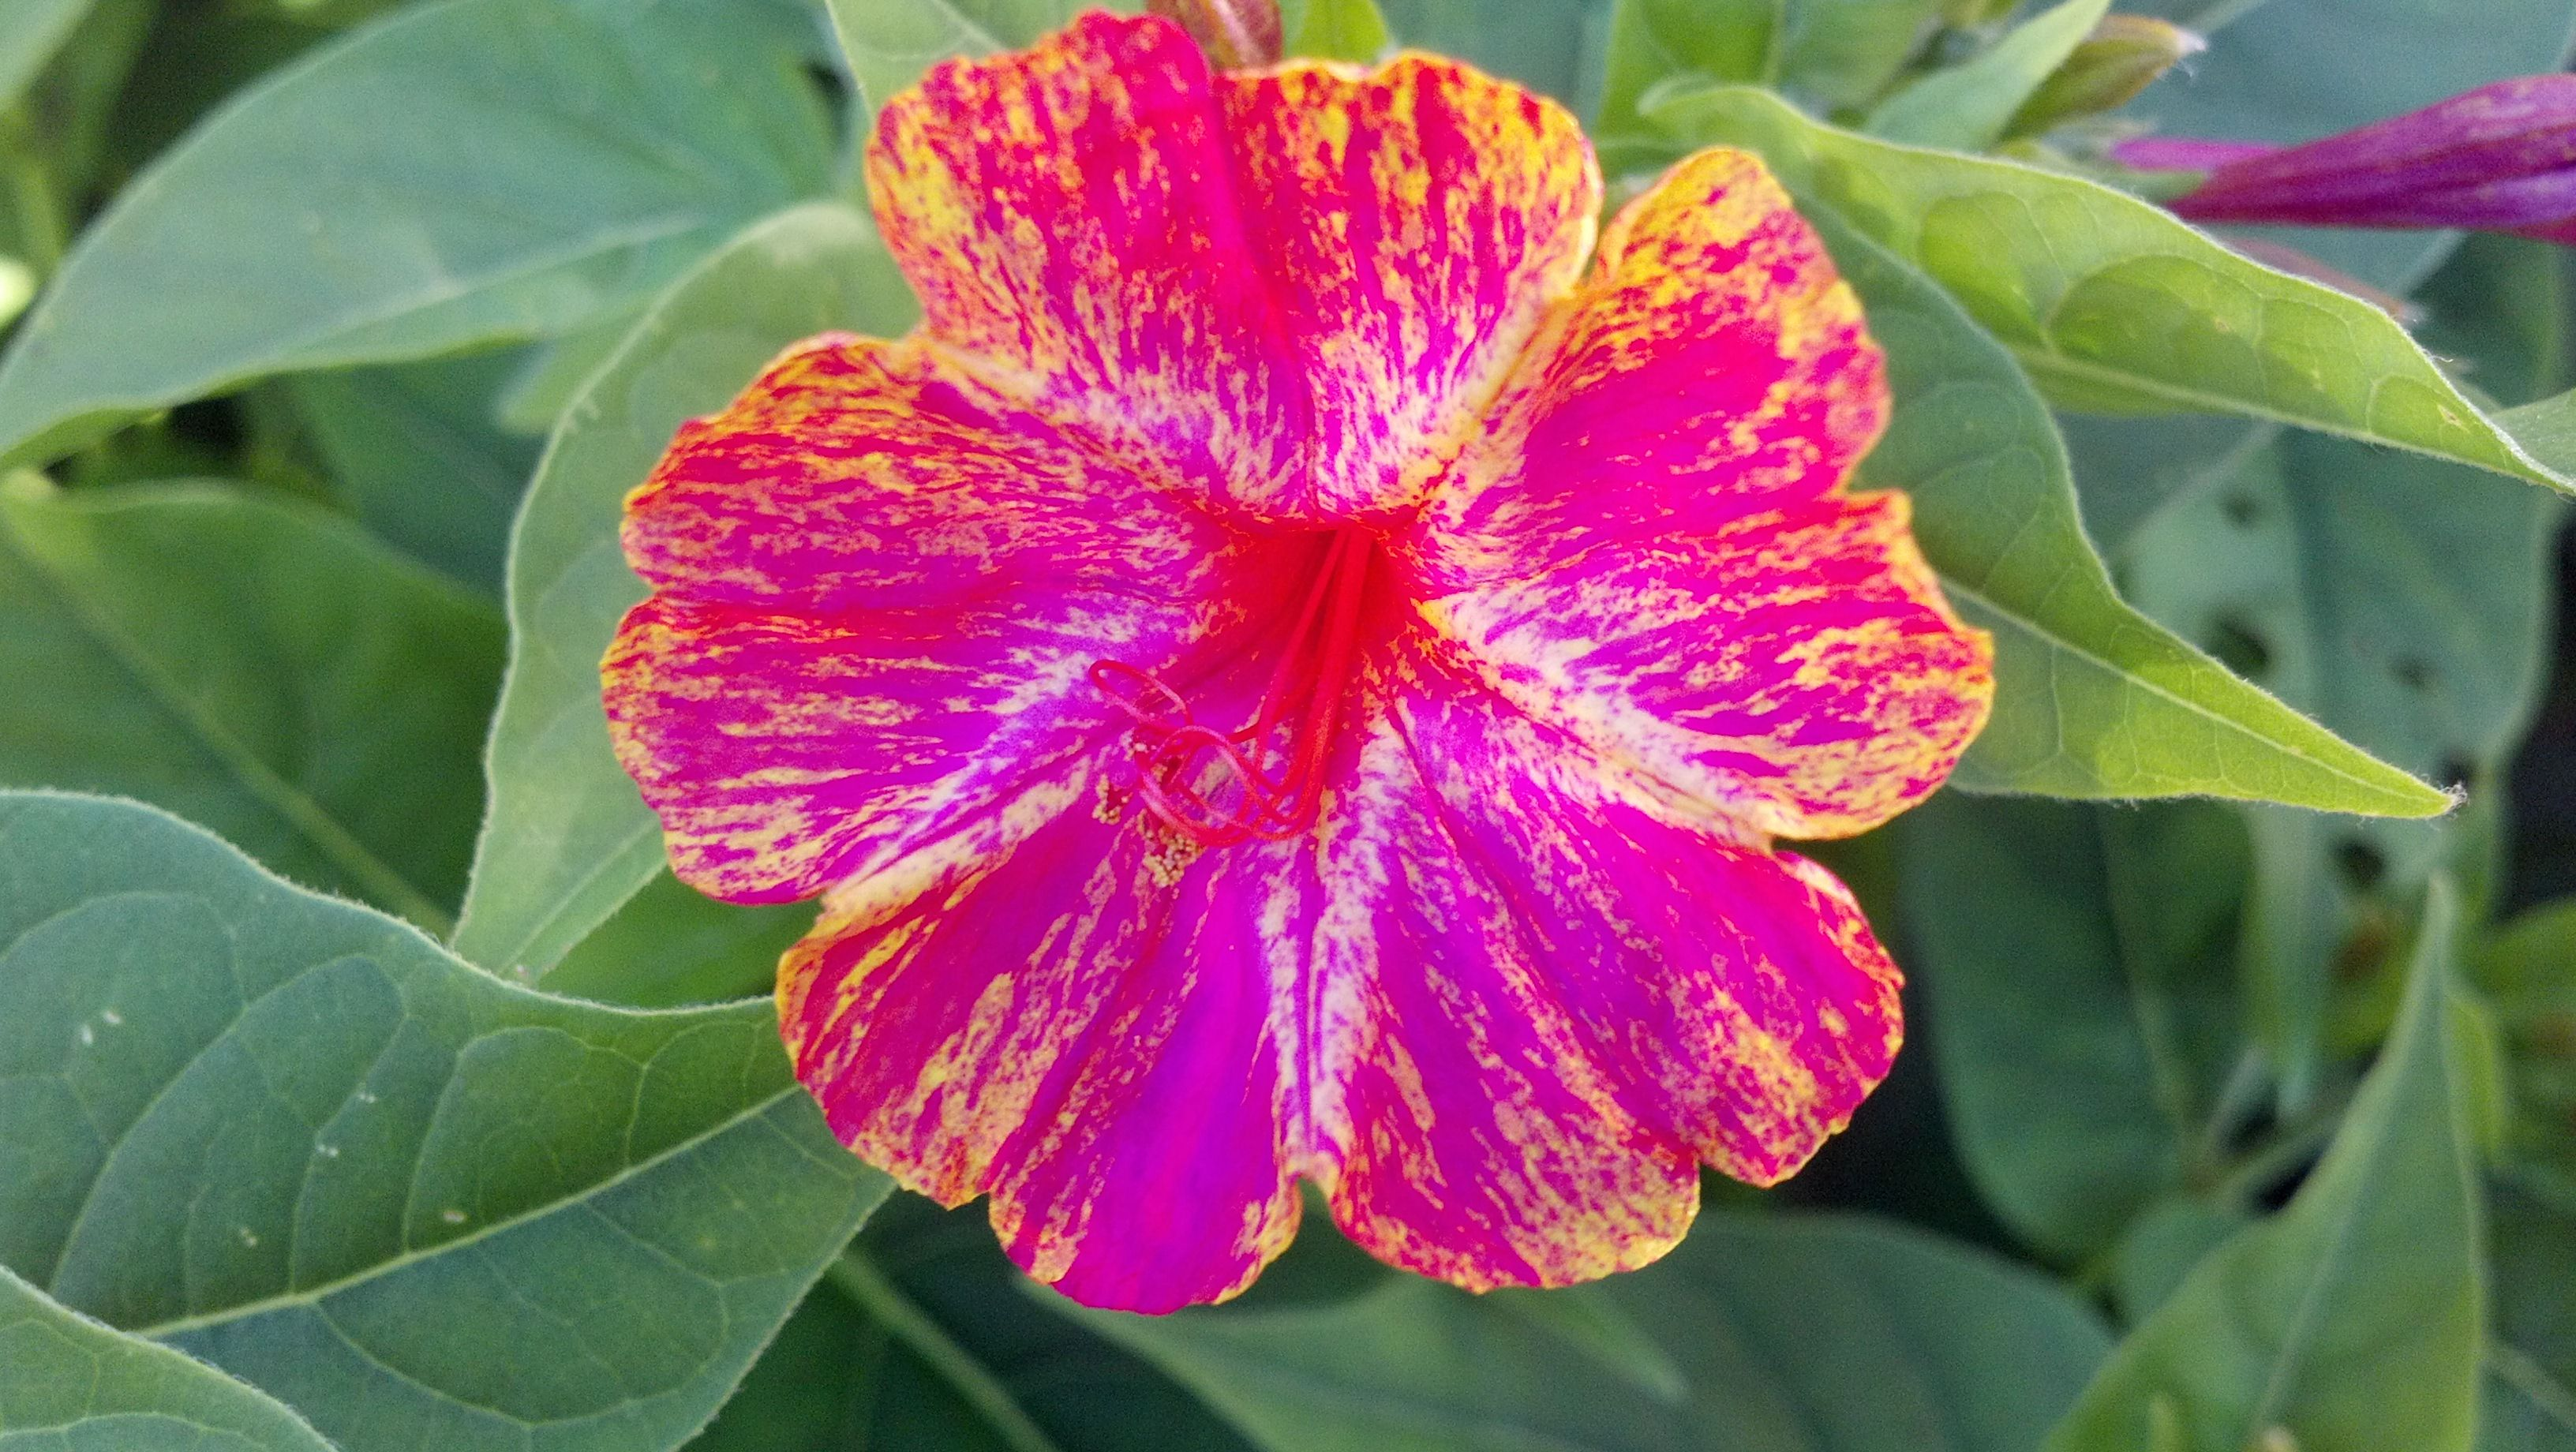 """""""4 O'clock"""" Mirabilis jalapa,The four o'clock flower or marvel of Peru. Love all my Four O'clocks but,plant where you don't mind them coming back every year. Spreading,self seeding and hard to get rid of."""